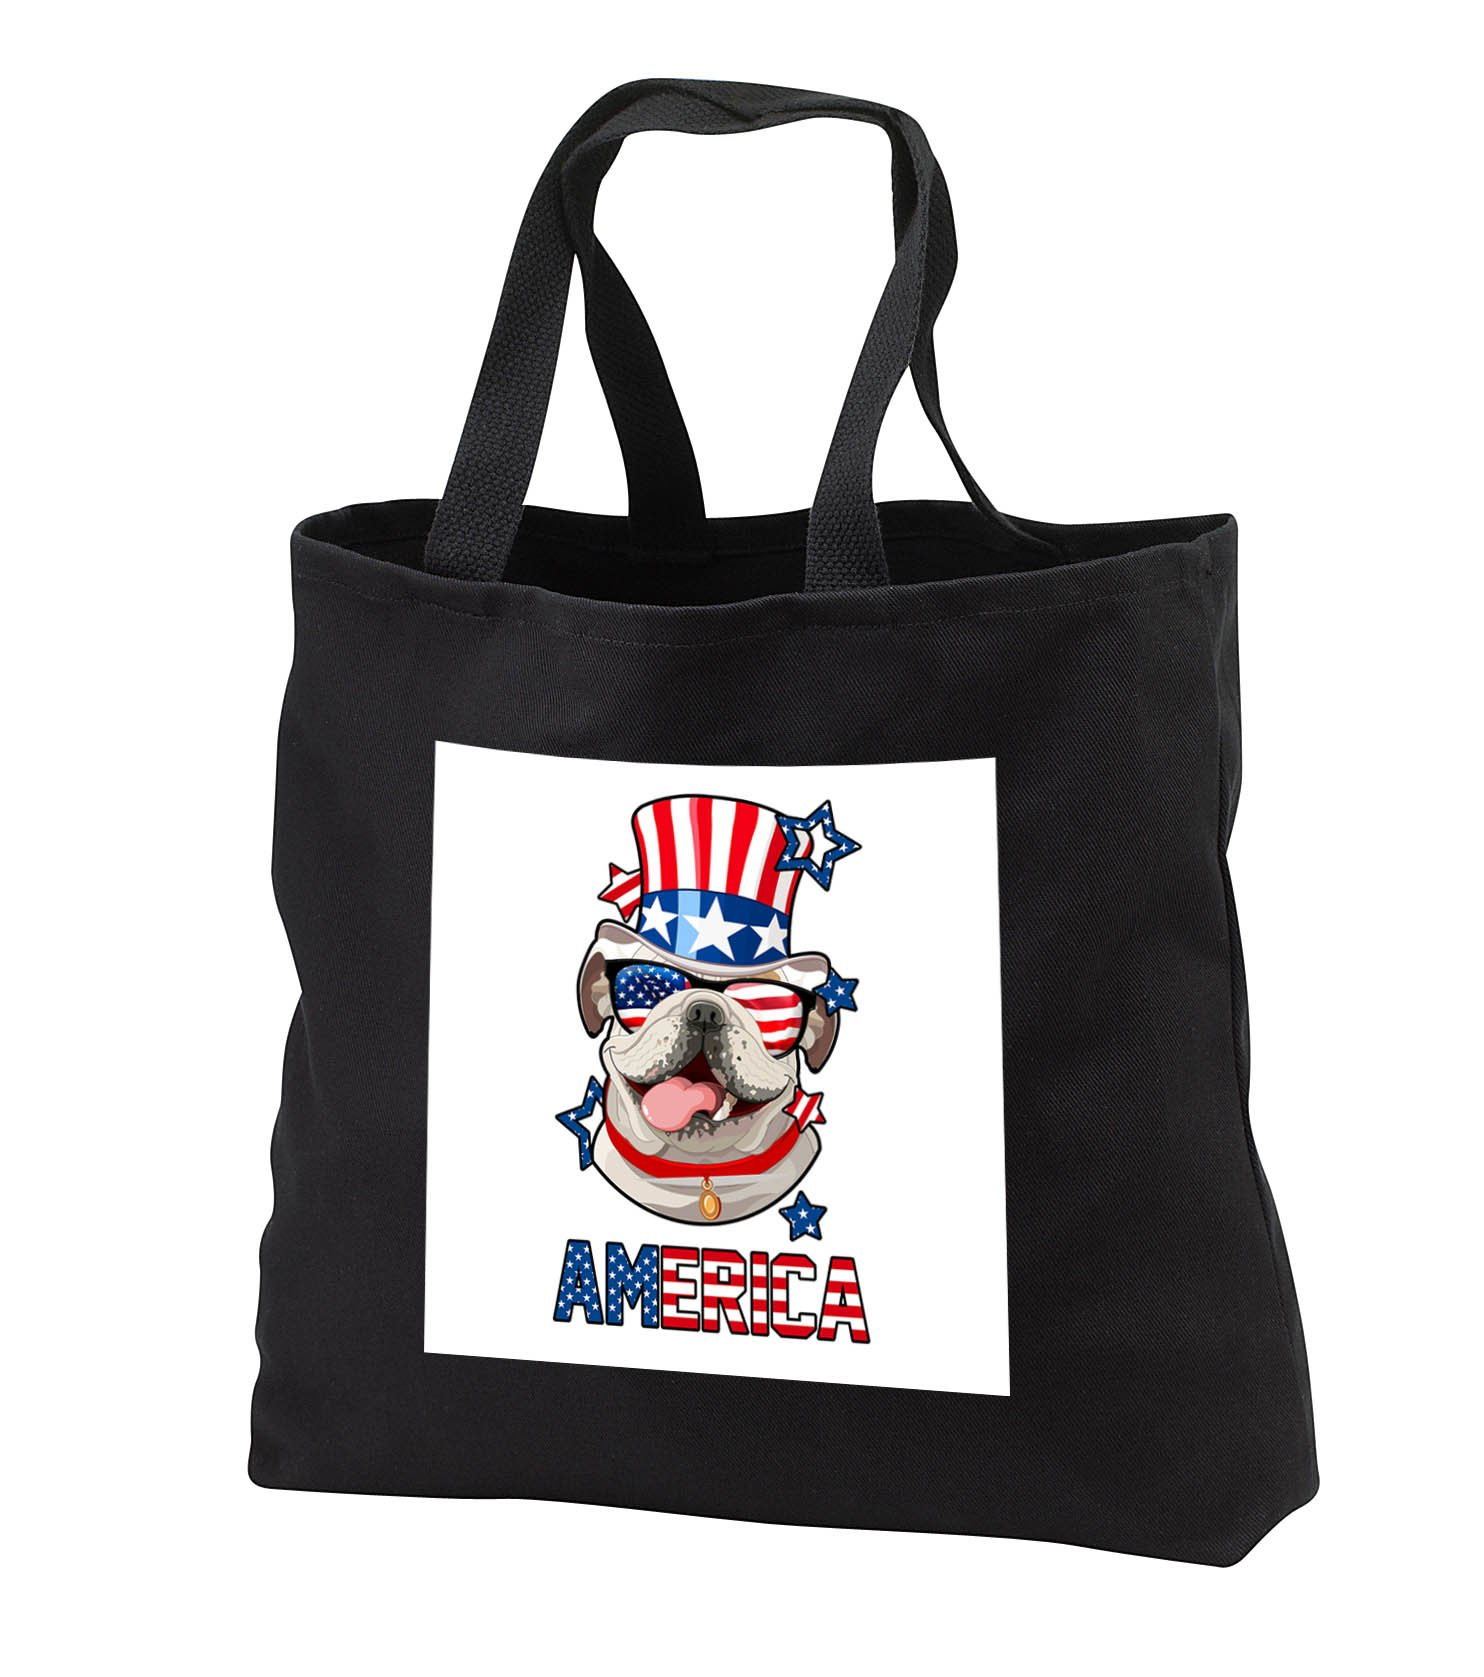 Patriotic American Dogs - English Bulldog With American Flag Sunglasses and Tophat Dog America - Tote Bags - Black Tote Bag JUMBO 20w x 15h x 5d (tb_284228_3)